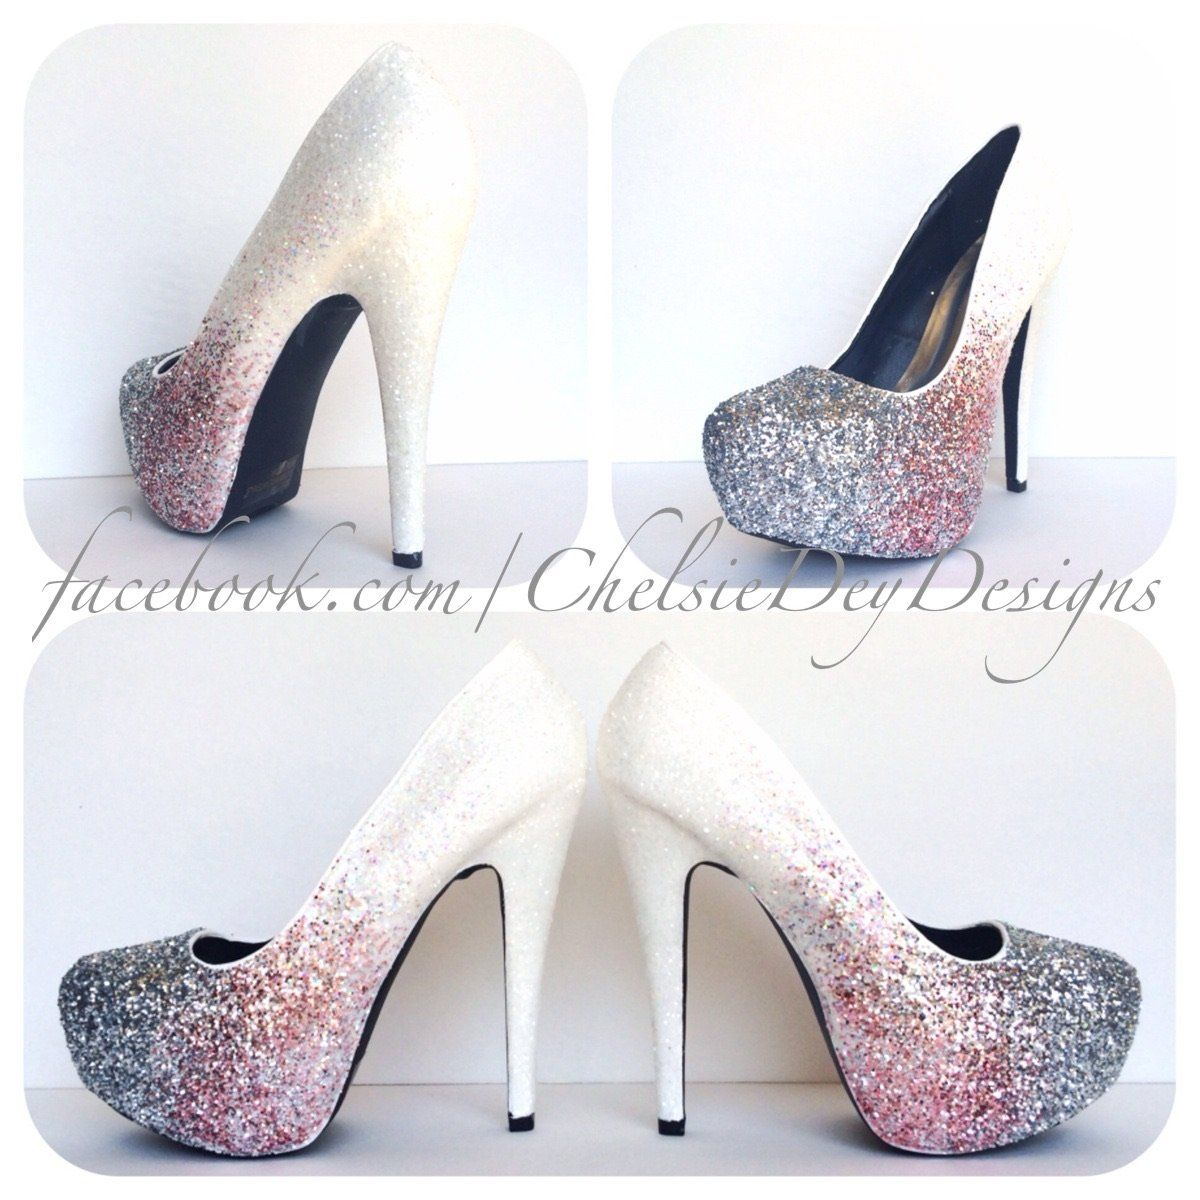 56756daee69a White Silver Ombre Glitter High Heels, Pink White Silver Wedding Shoes